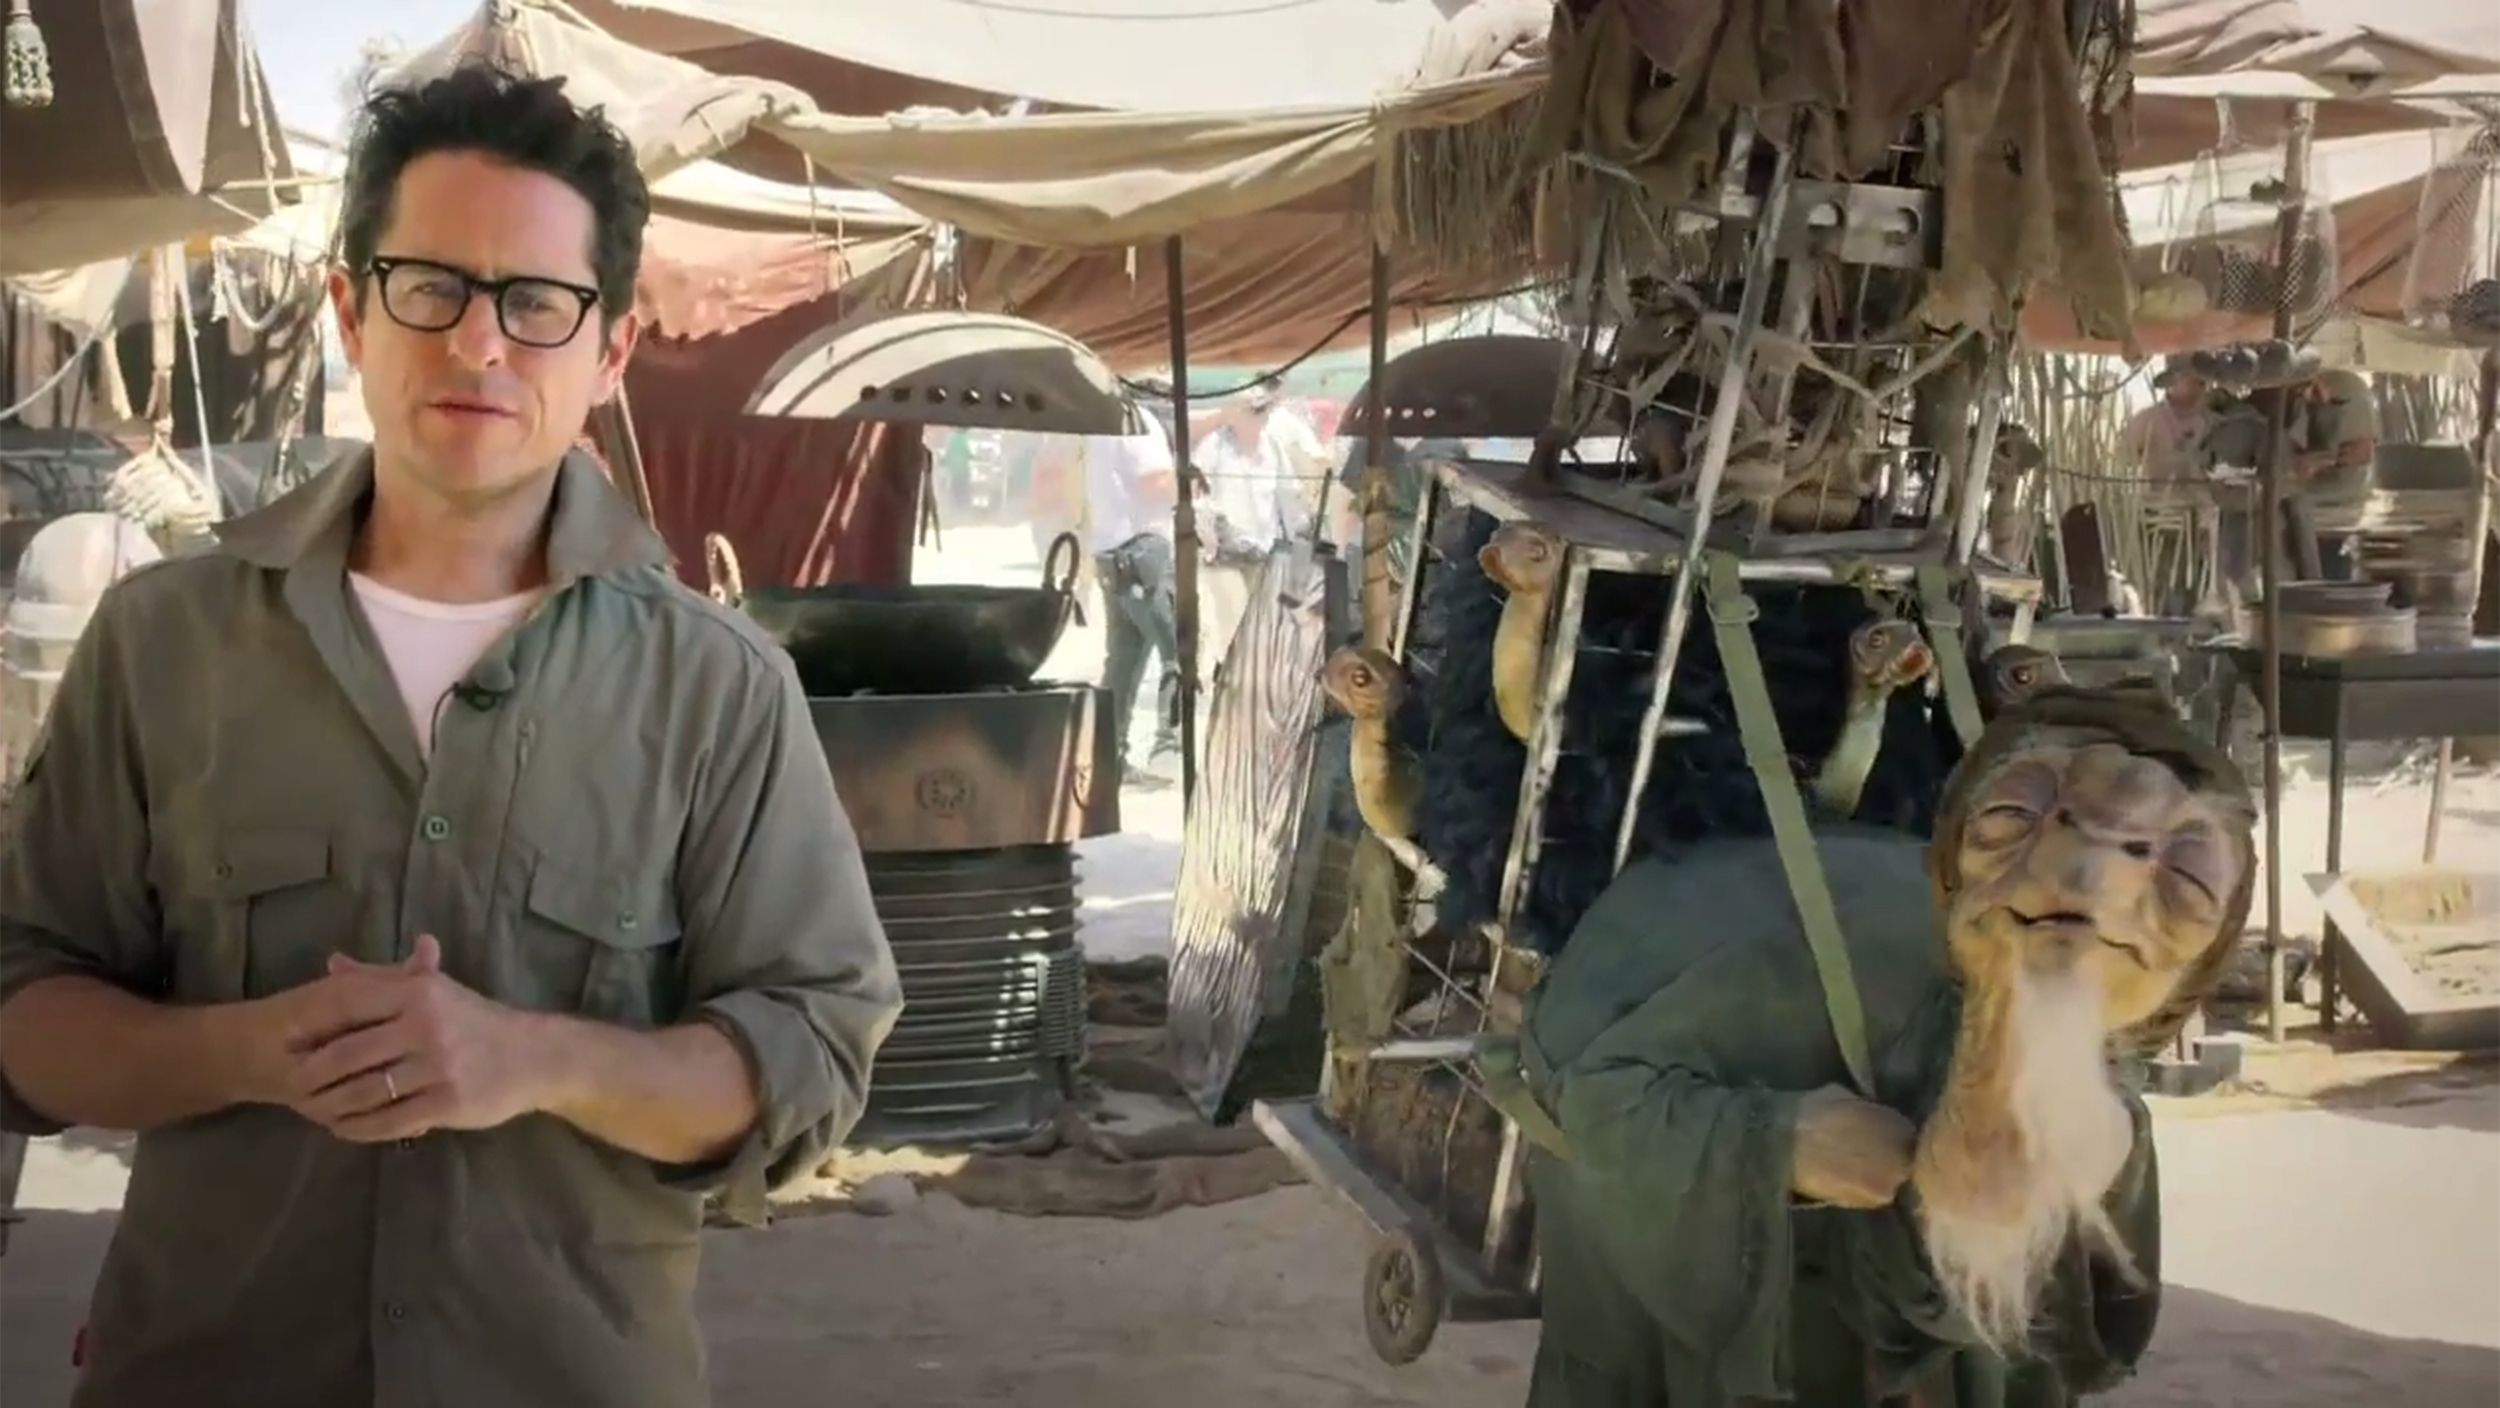 'Star Wars' director J.J. Abrams reveals new creature, offers chance to win movie role